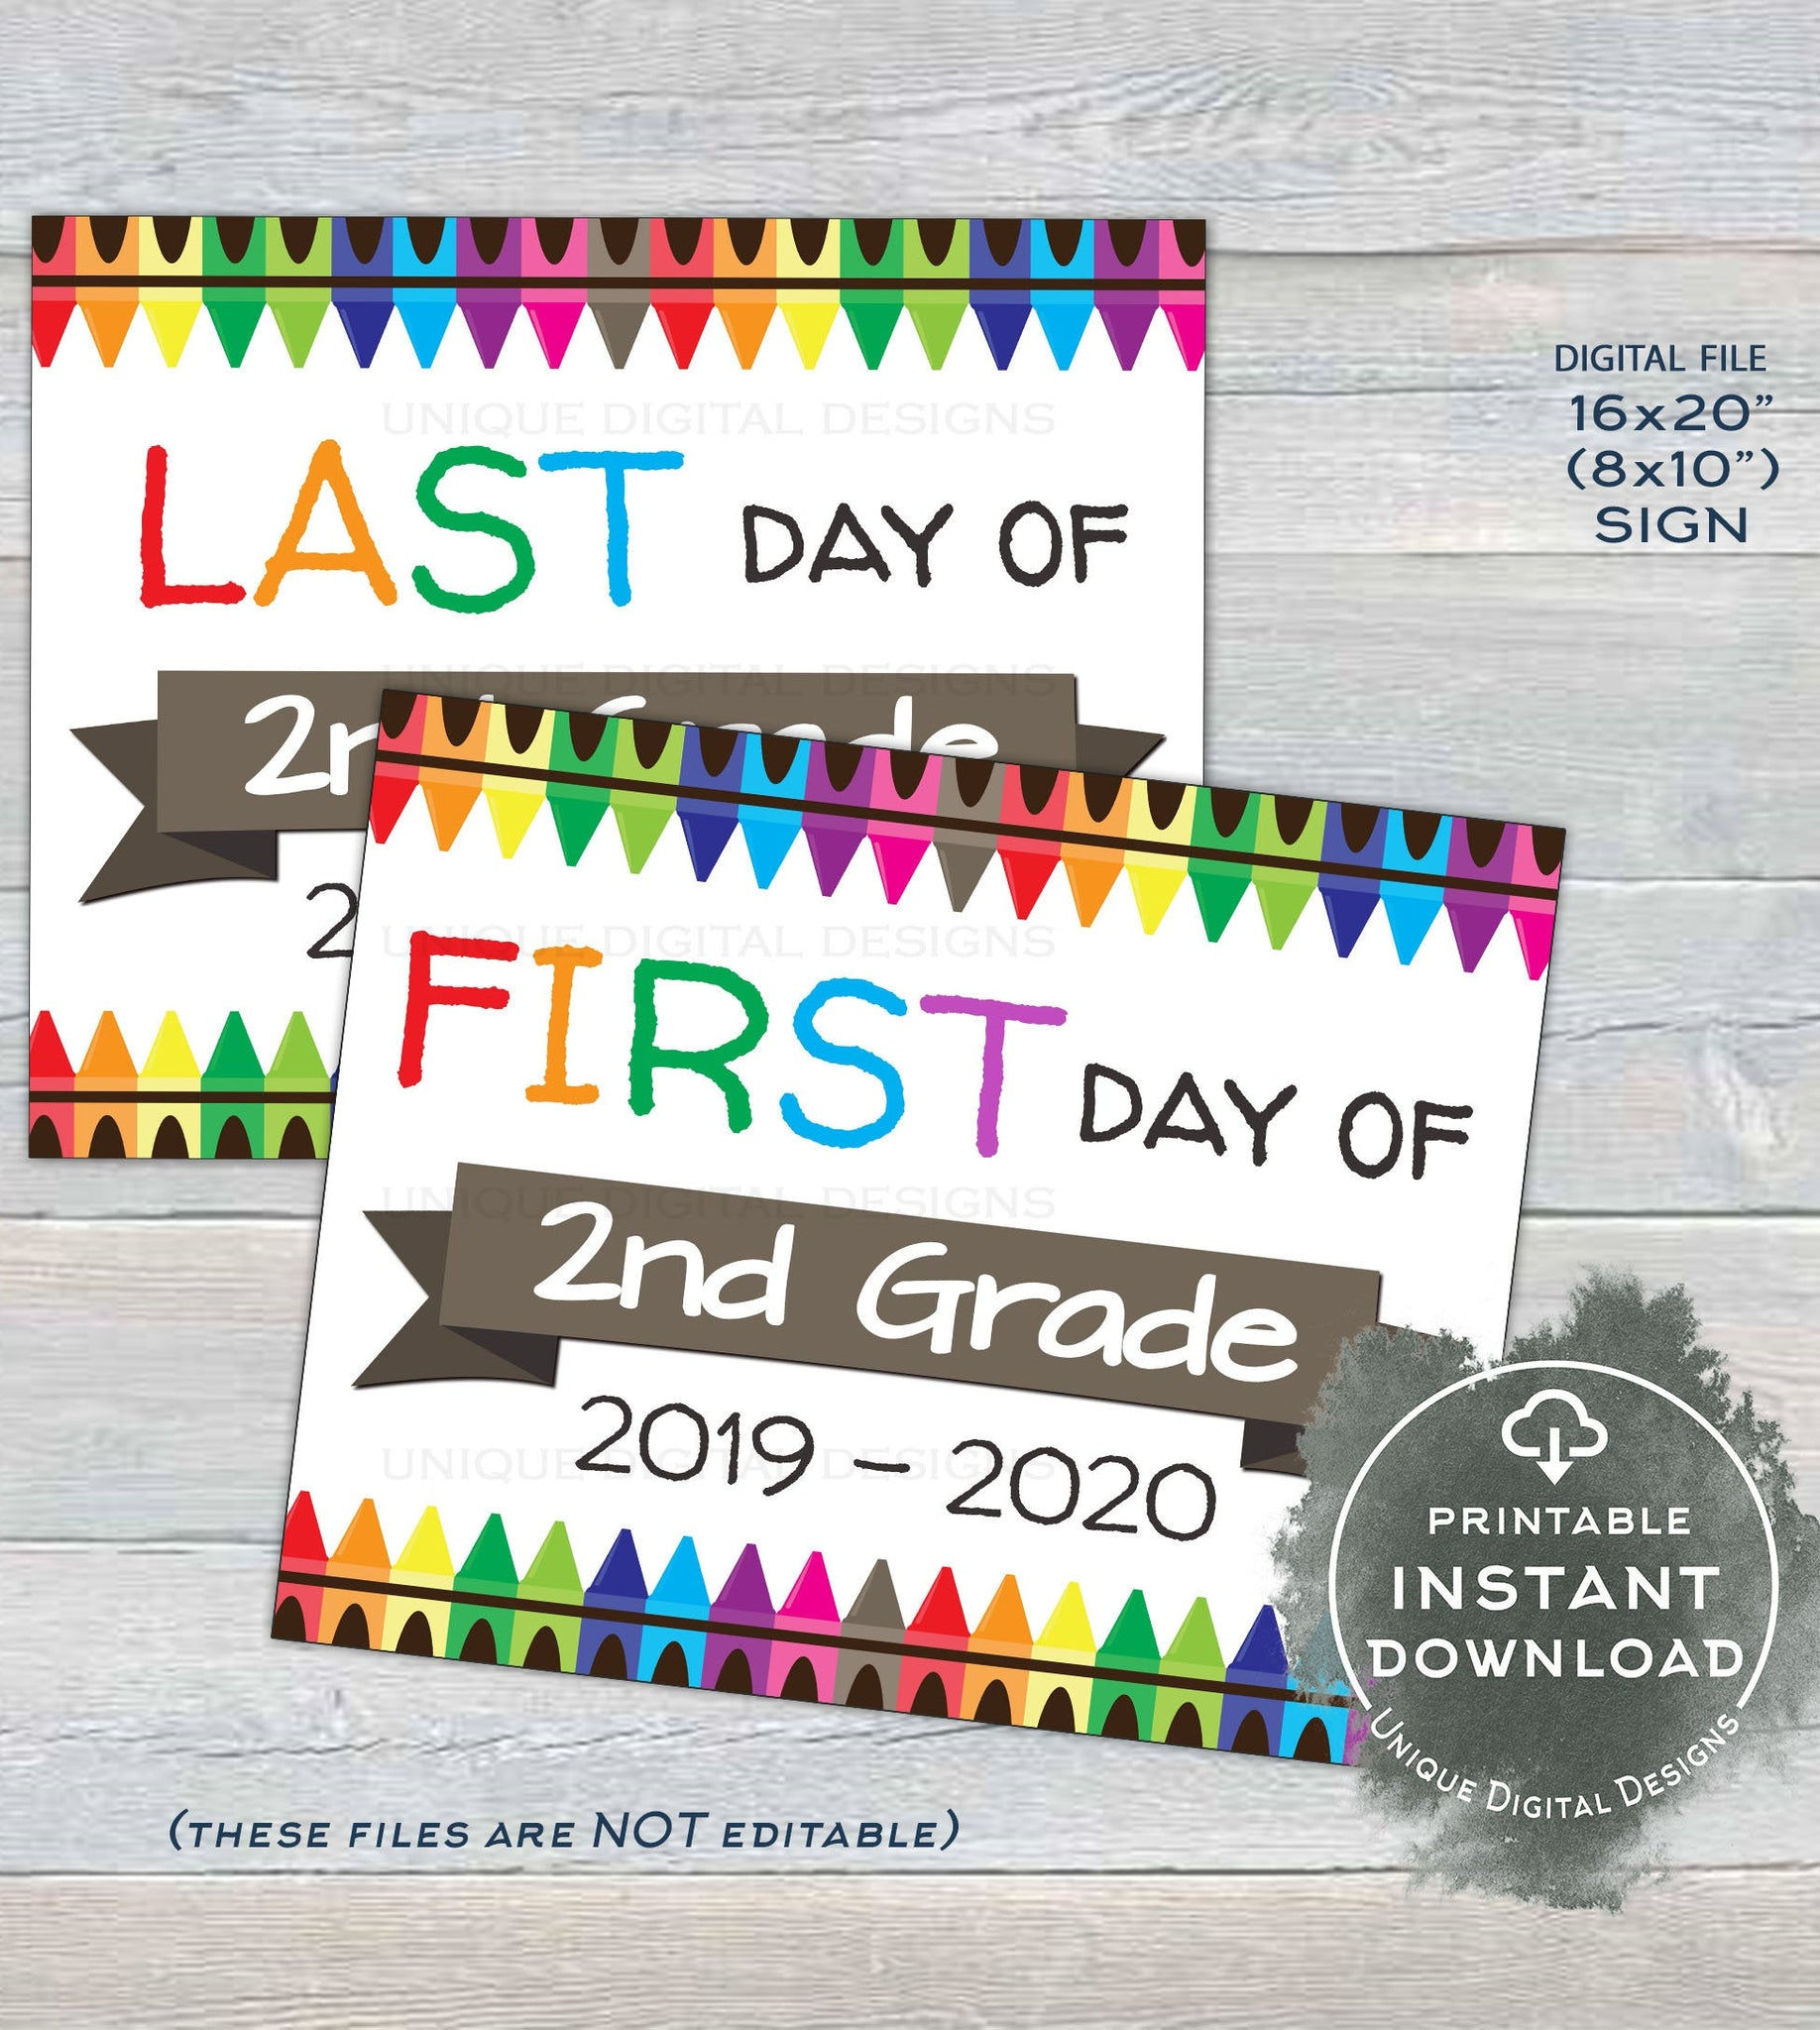 picture about First Day of Second Grade Printable Sign titled 2019 Very first working day of Higher education Indications, Reusable 1st working day 2nd Quality Signal, Back again in the direction of College or university Past working day of Faculty Crayon Electronic Printable Immediate Obtain